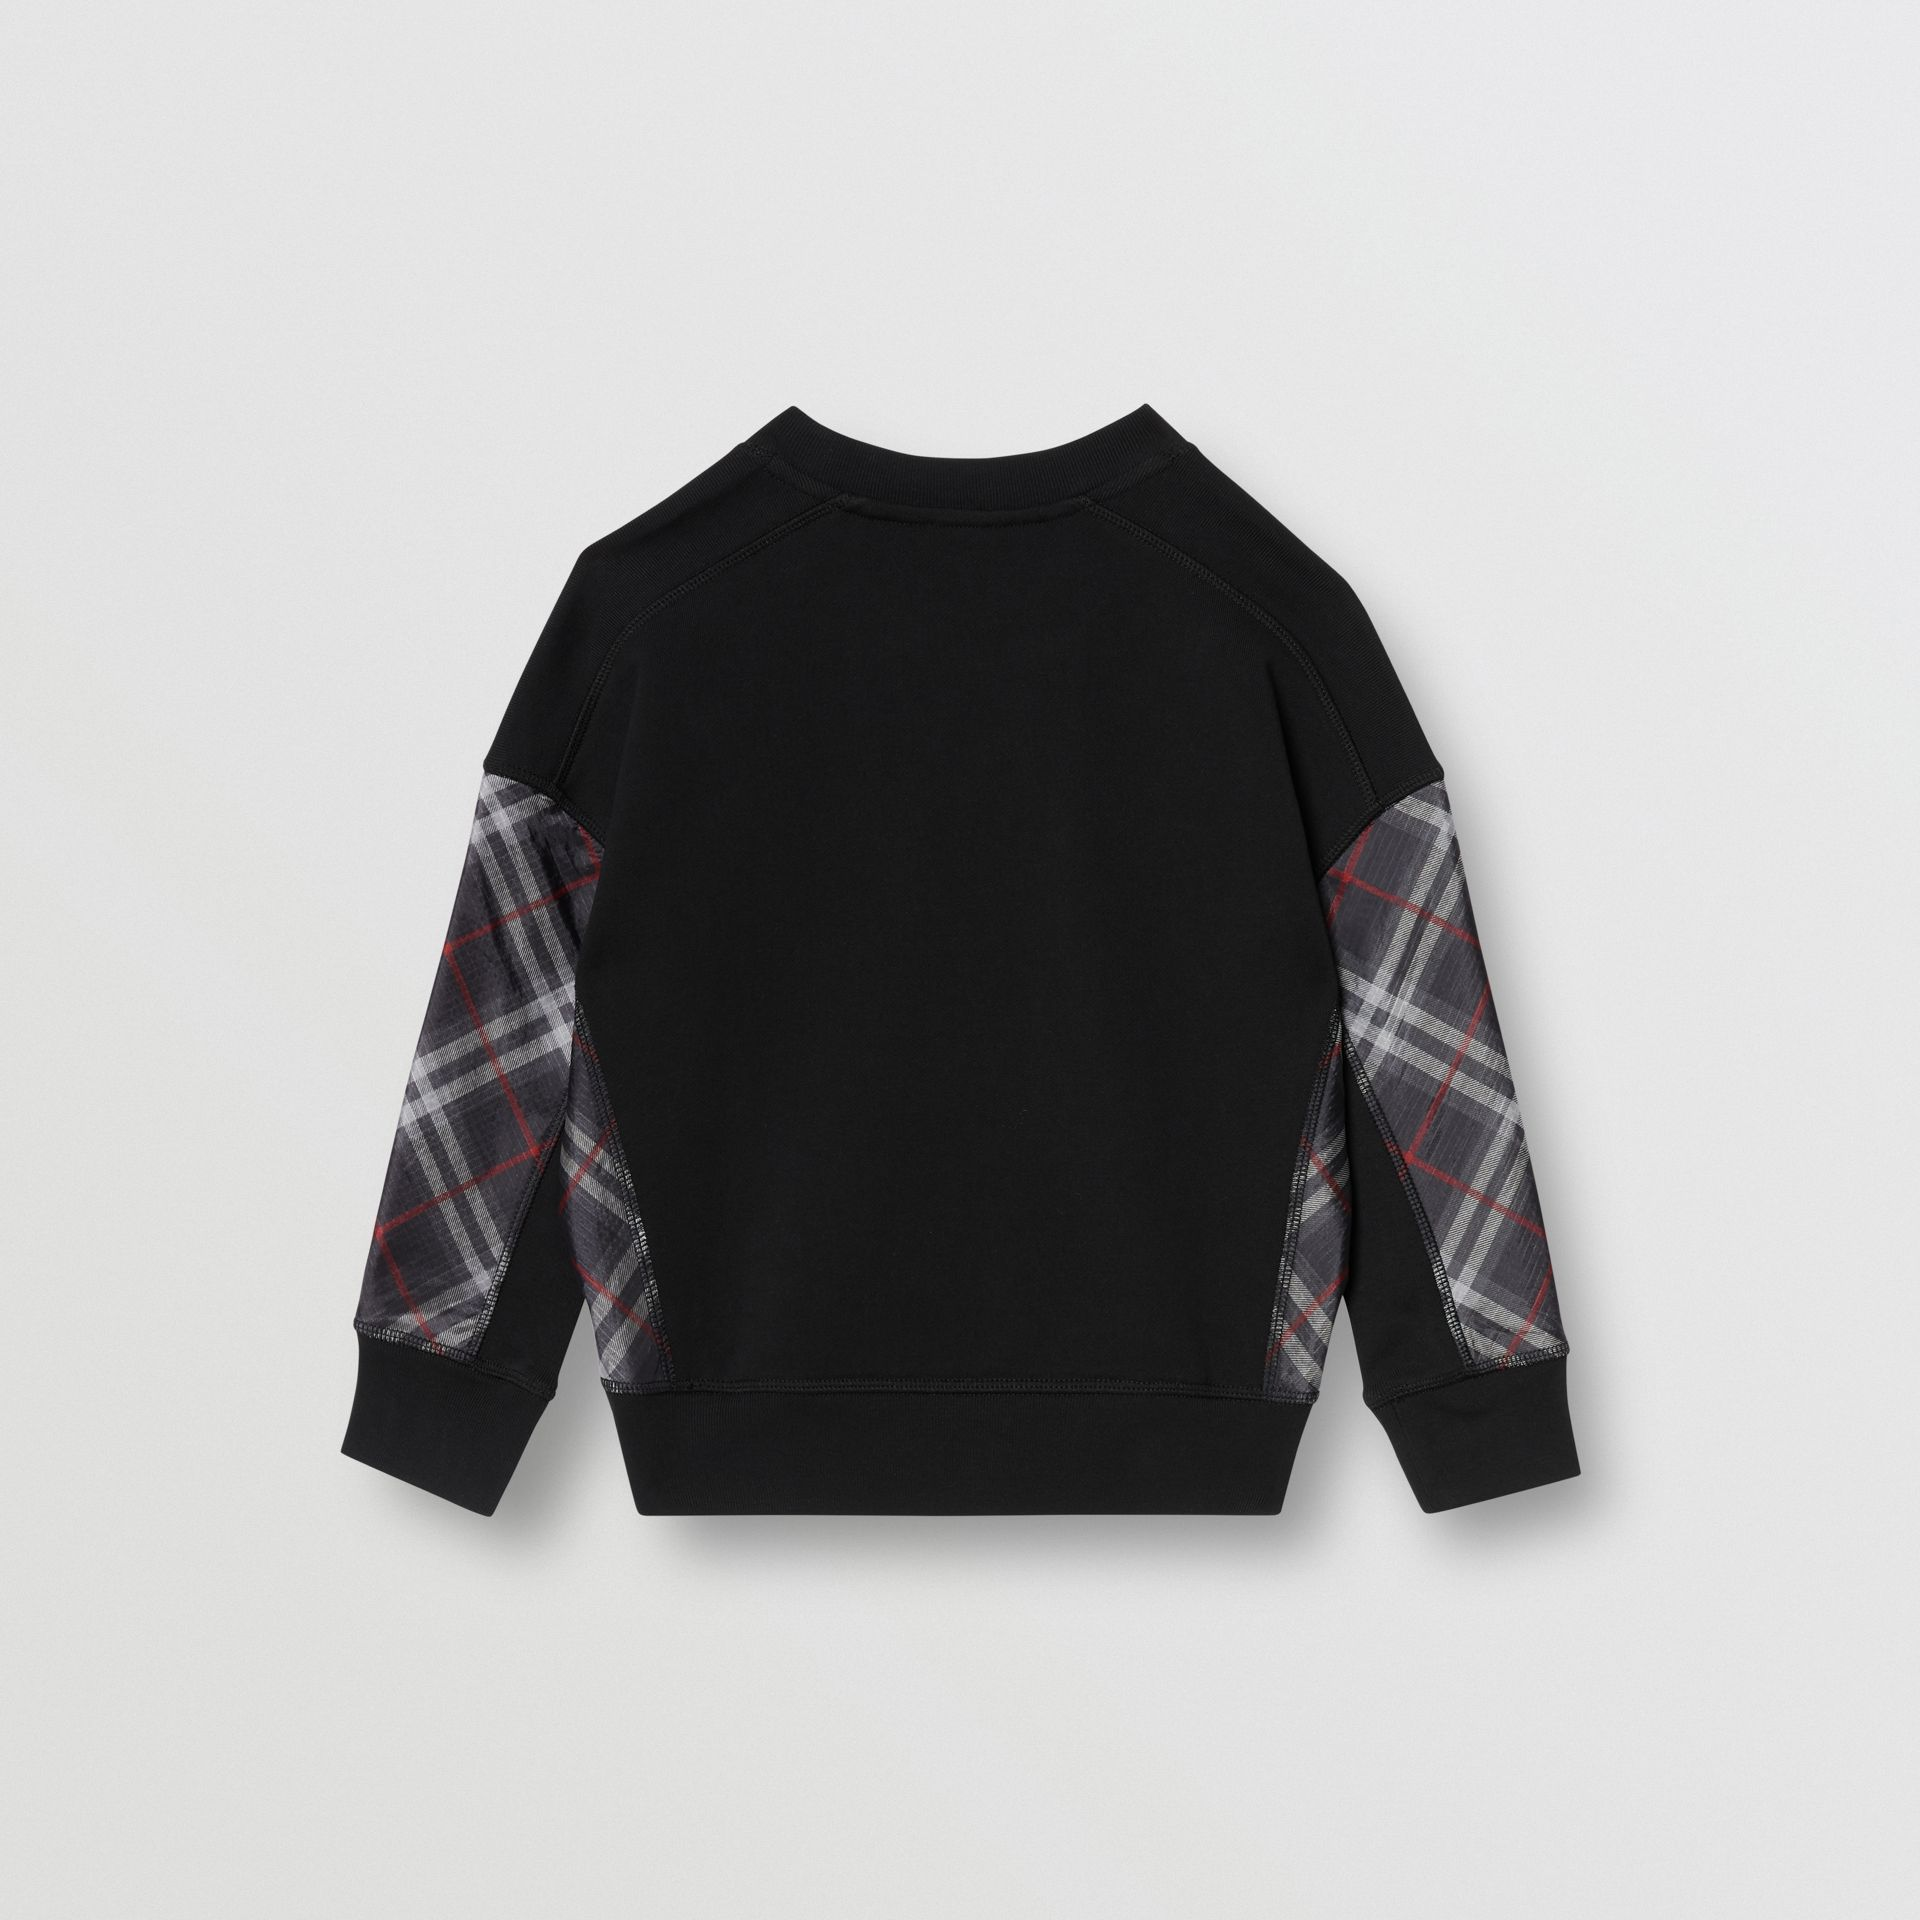 Sweat-shirt en coton avec Vintage check (Noir) | Burberry - photo de la galerie 2